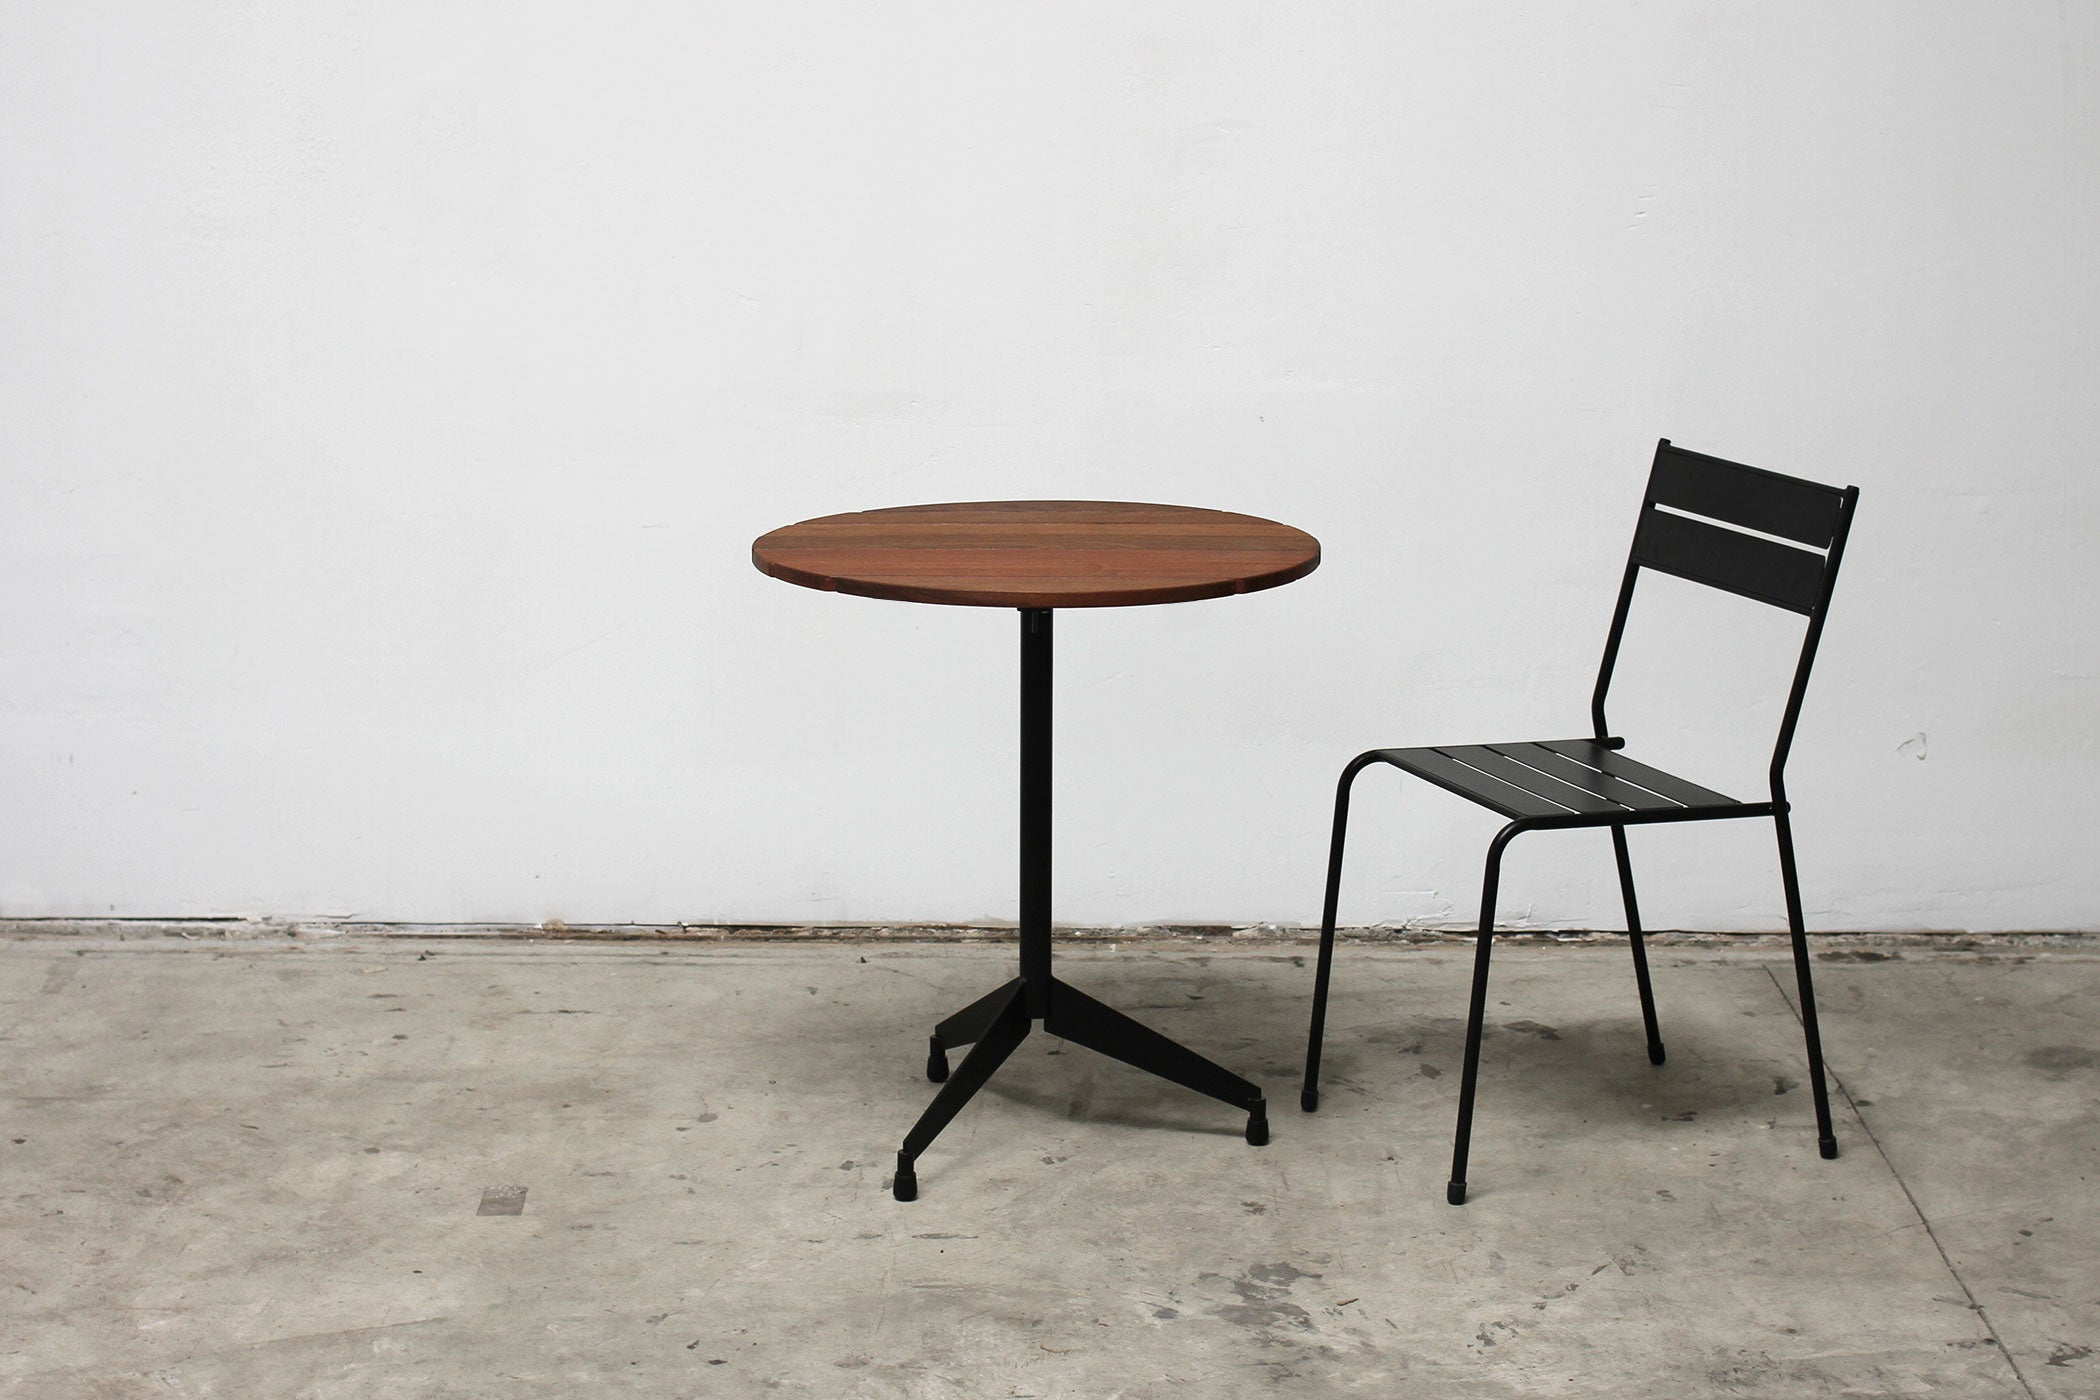 RAD Furniture's Slatted Wood Round Cafe Table with Slatted Steel Cafe Chair